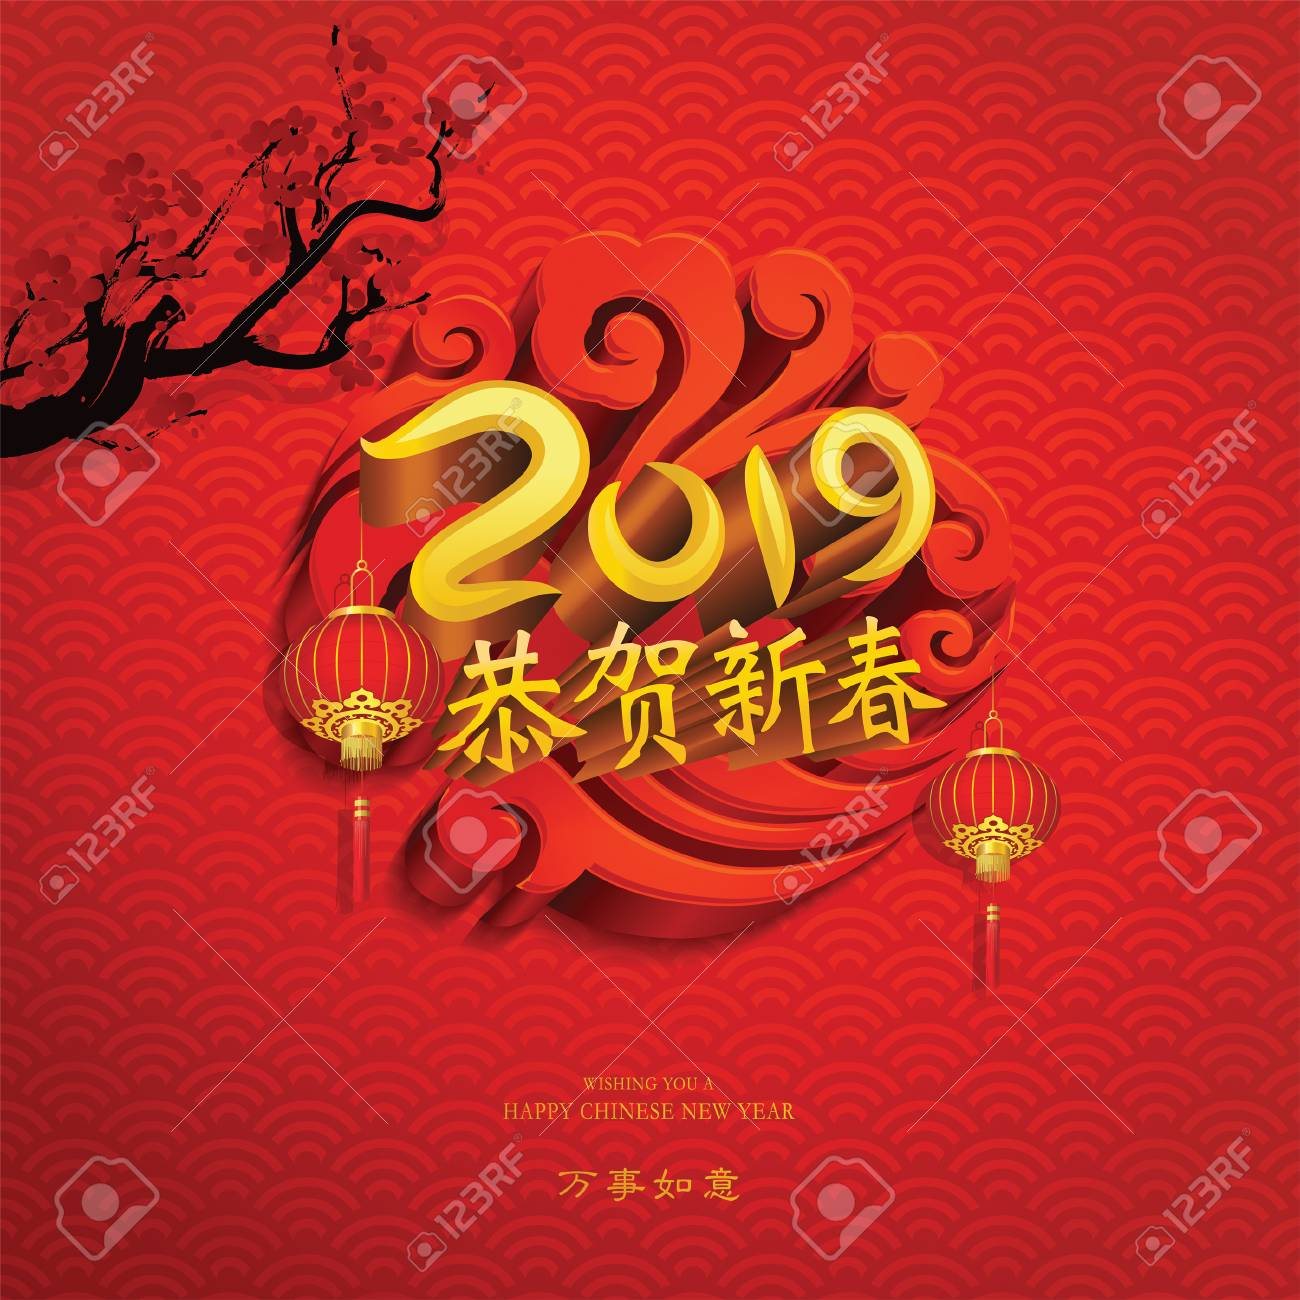 chinese new year greetings stock vector 113081578